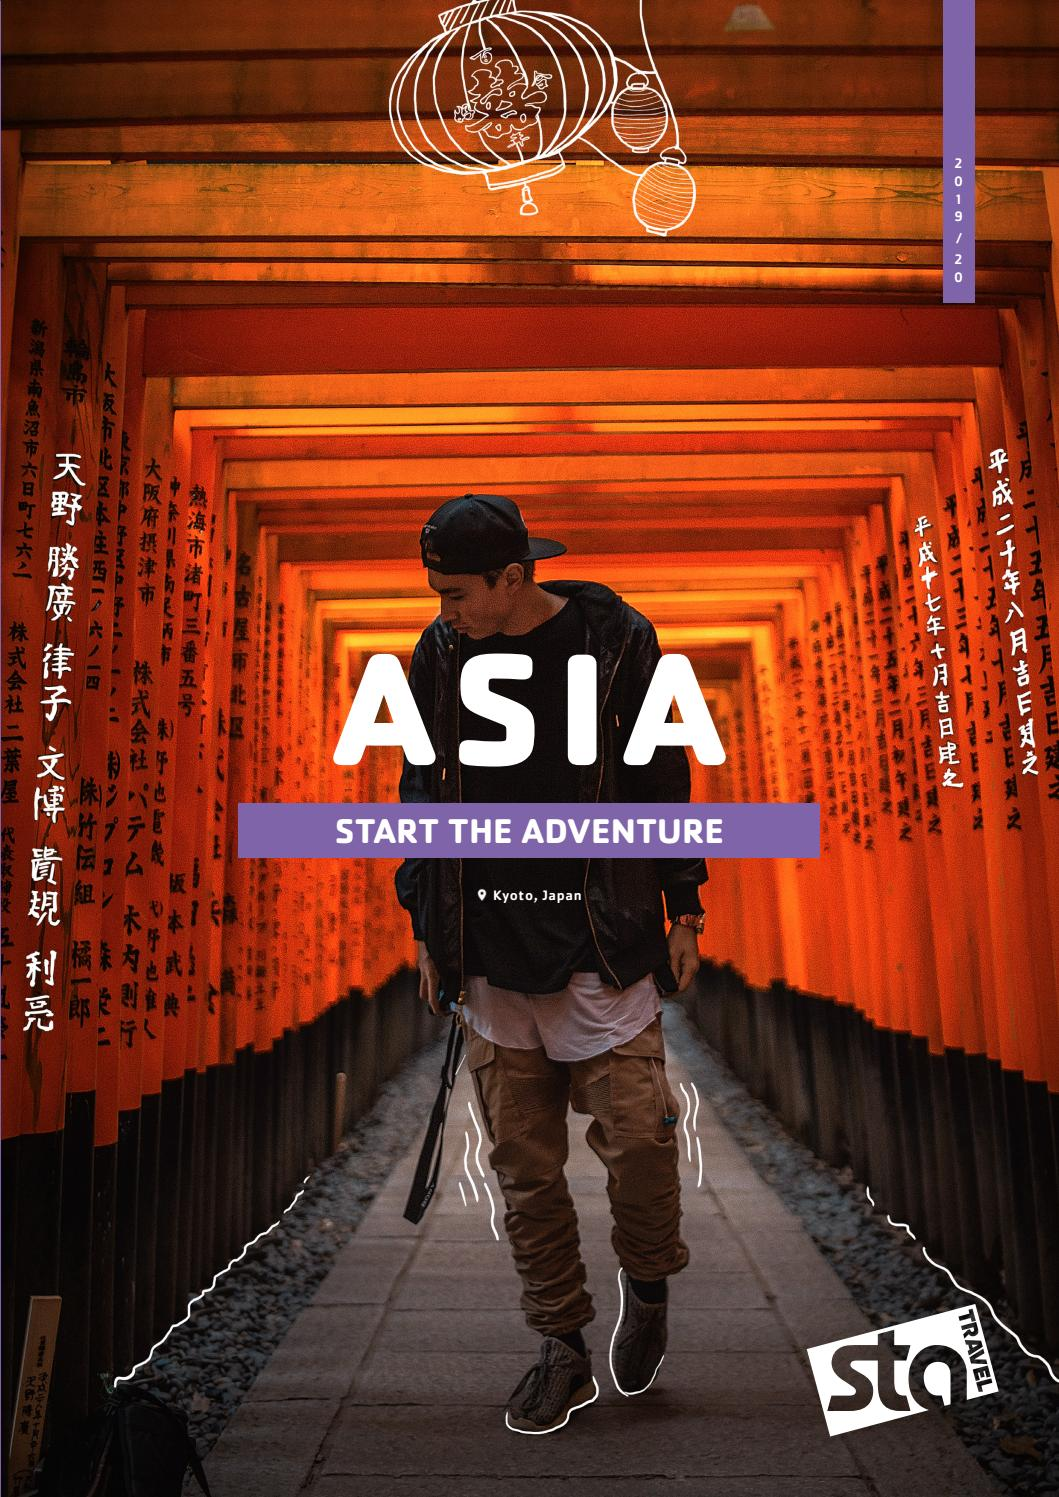 47ea588680e Asia 2019-20 NZD by STA Travel Ltd - issuu